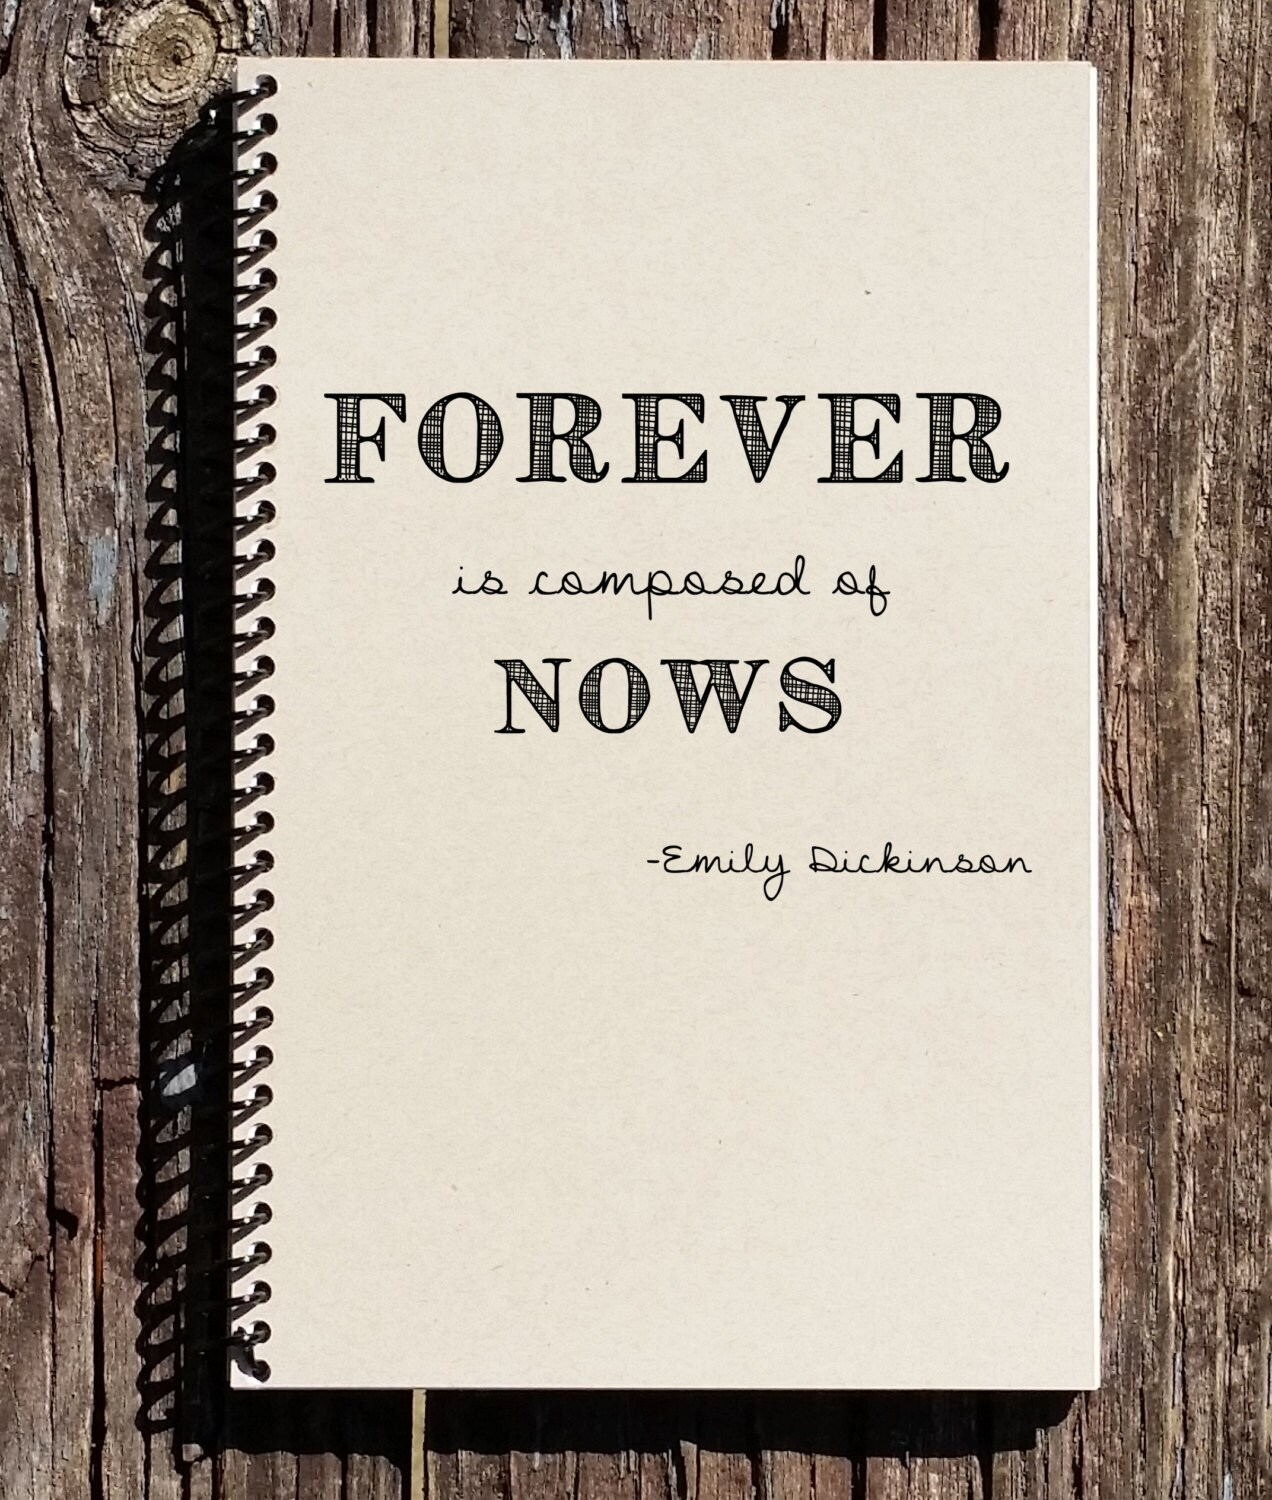 Inspirational Quotes About Failure: Emily Dickinson Quote Forever Is Composed Of Nows Emily